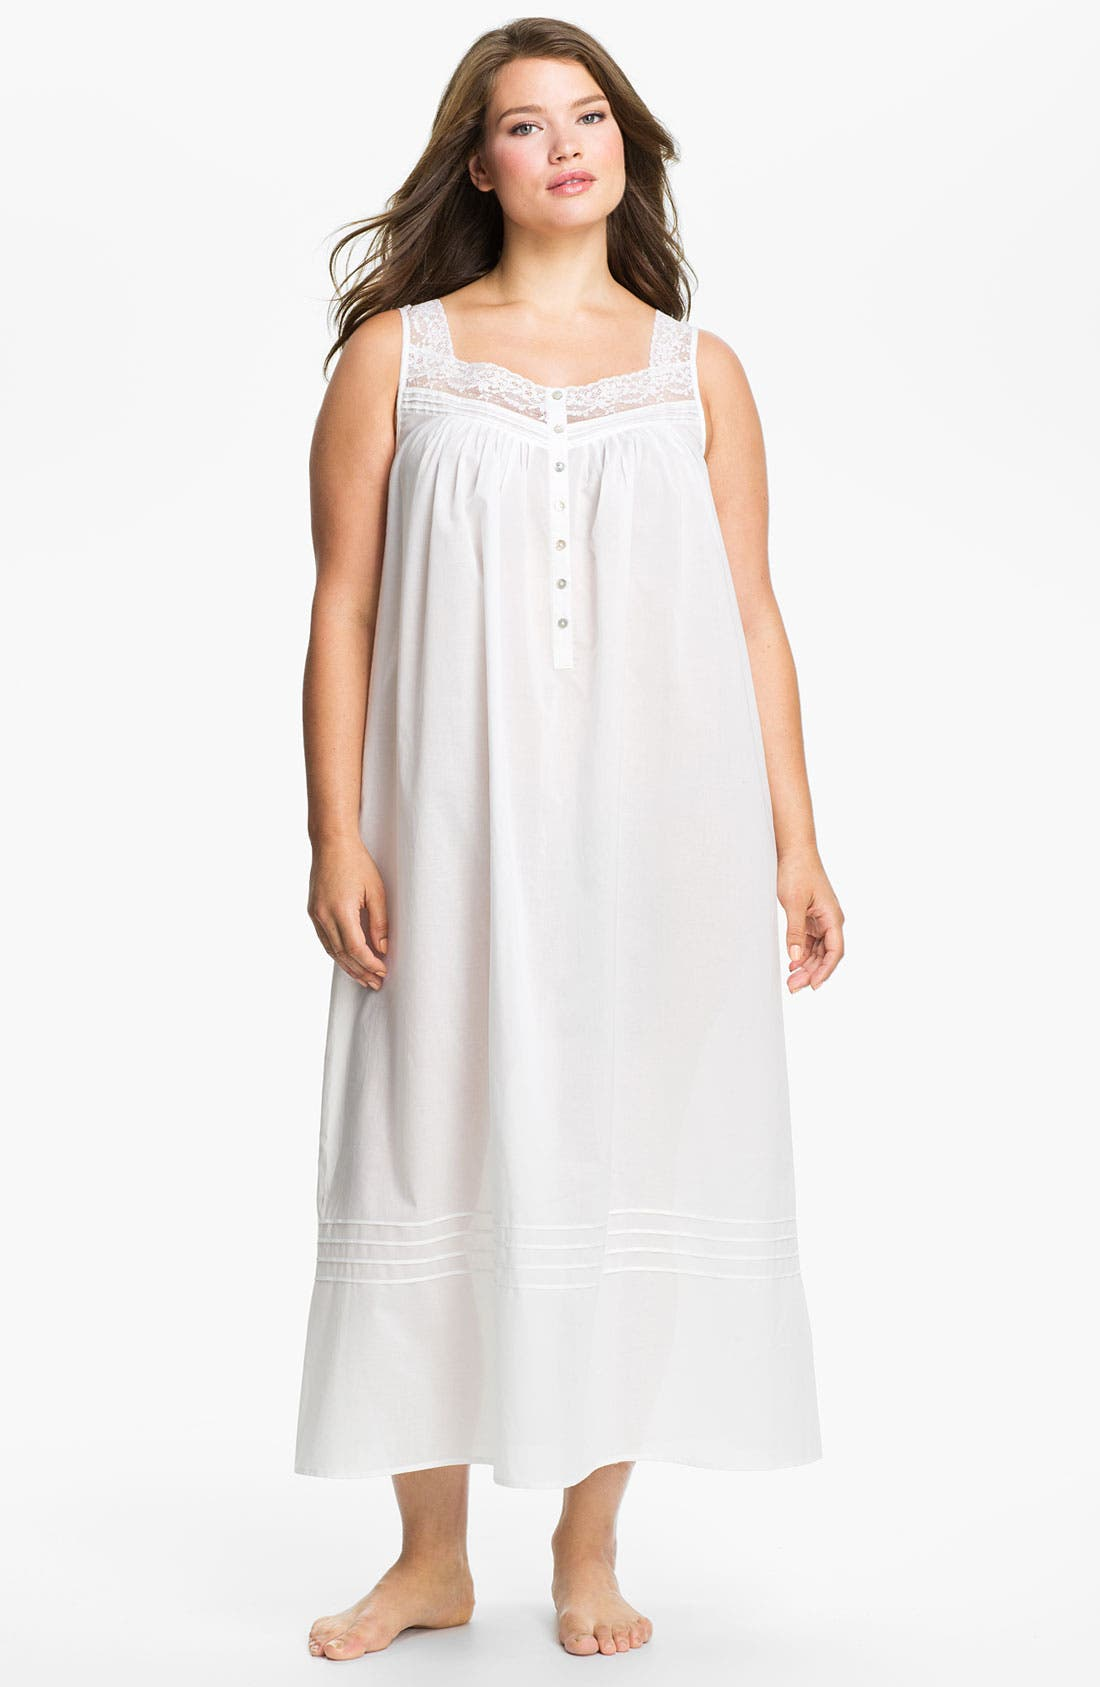 Alternate Image 1 Selected - Eileen West Lace Trim Sleeveless Nightgown (Plus Size)